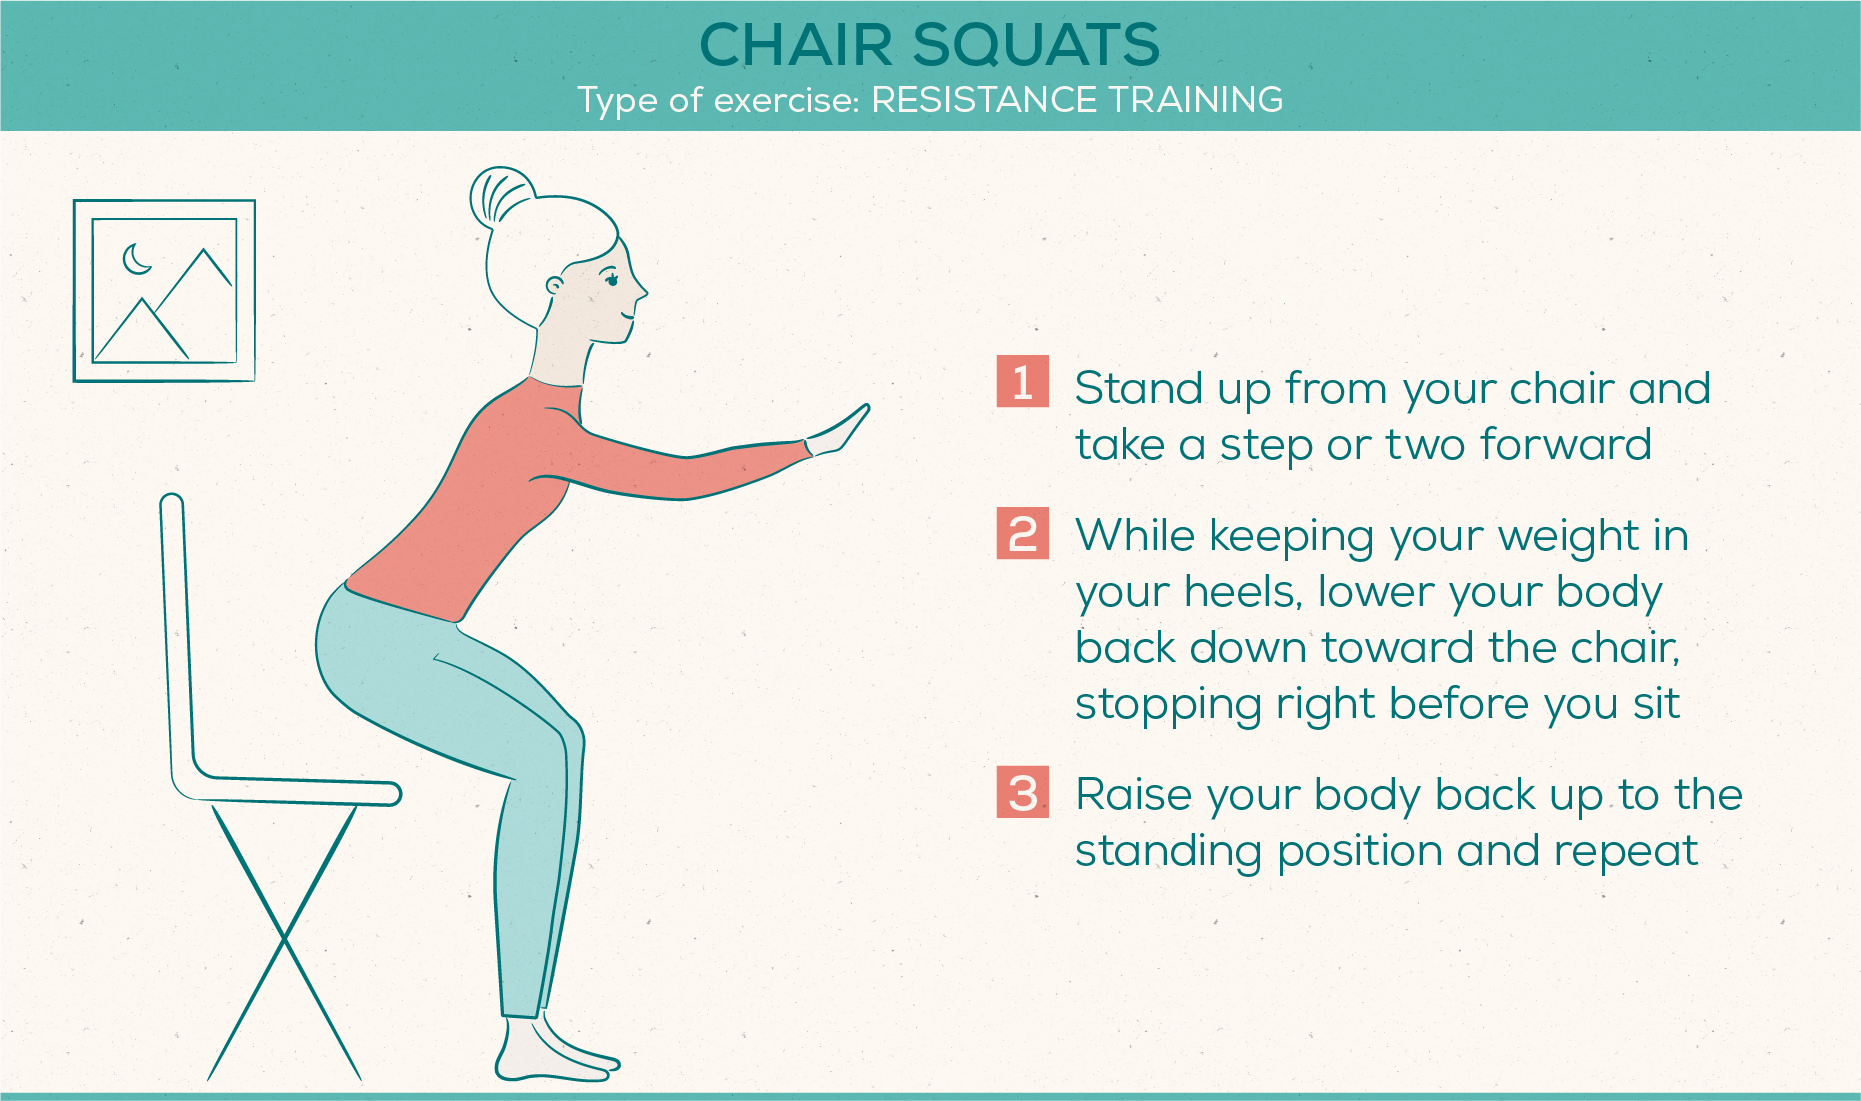 heart-healthy-exercises-chair-squats